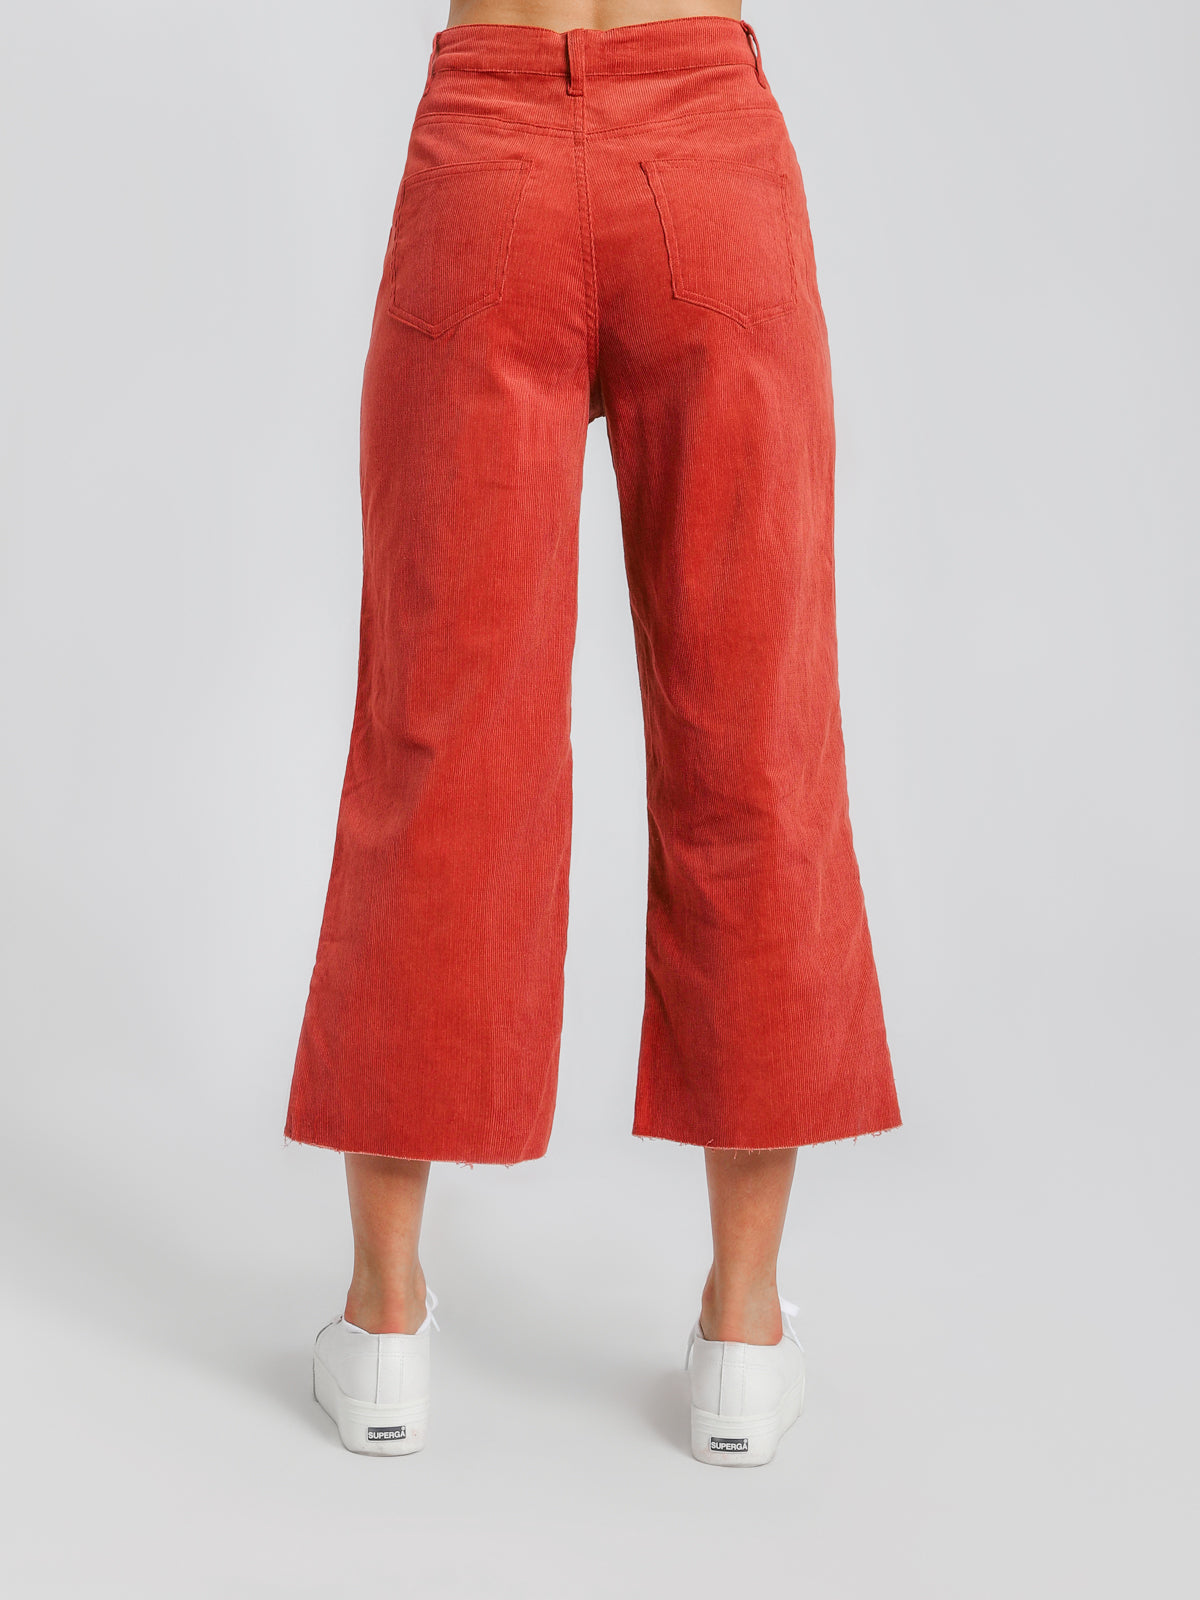 Paige Baby Cord Jeans in Sienna Red